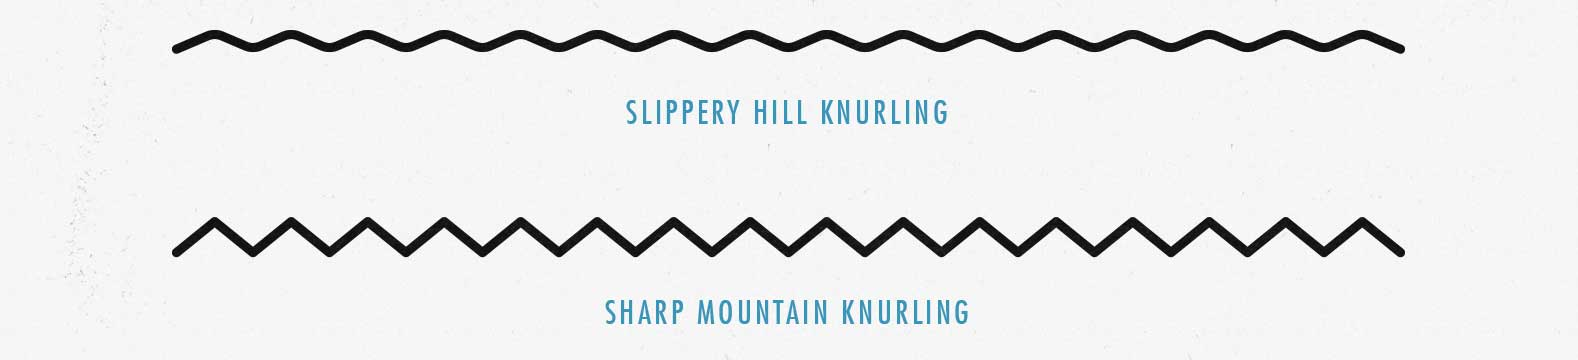 Hill knurling makes the barbell hard to grip, whereas mountain knurling is hard and digs into your hands while lifting